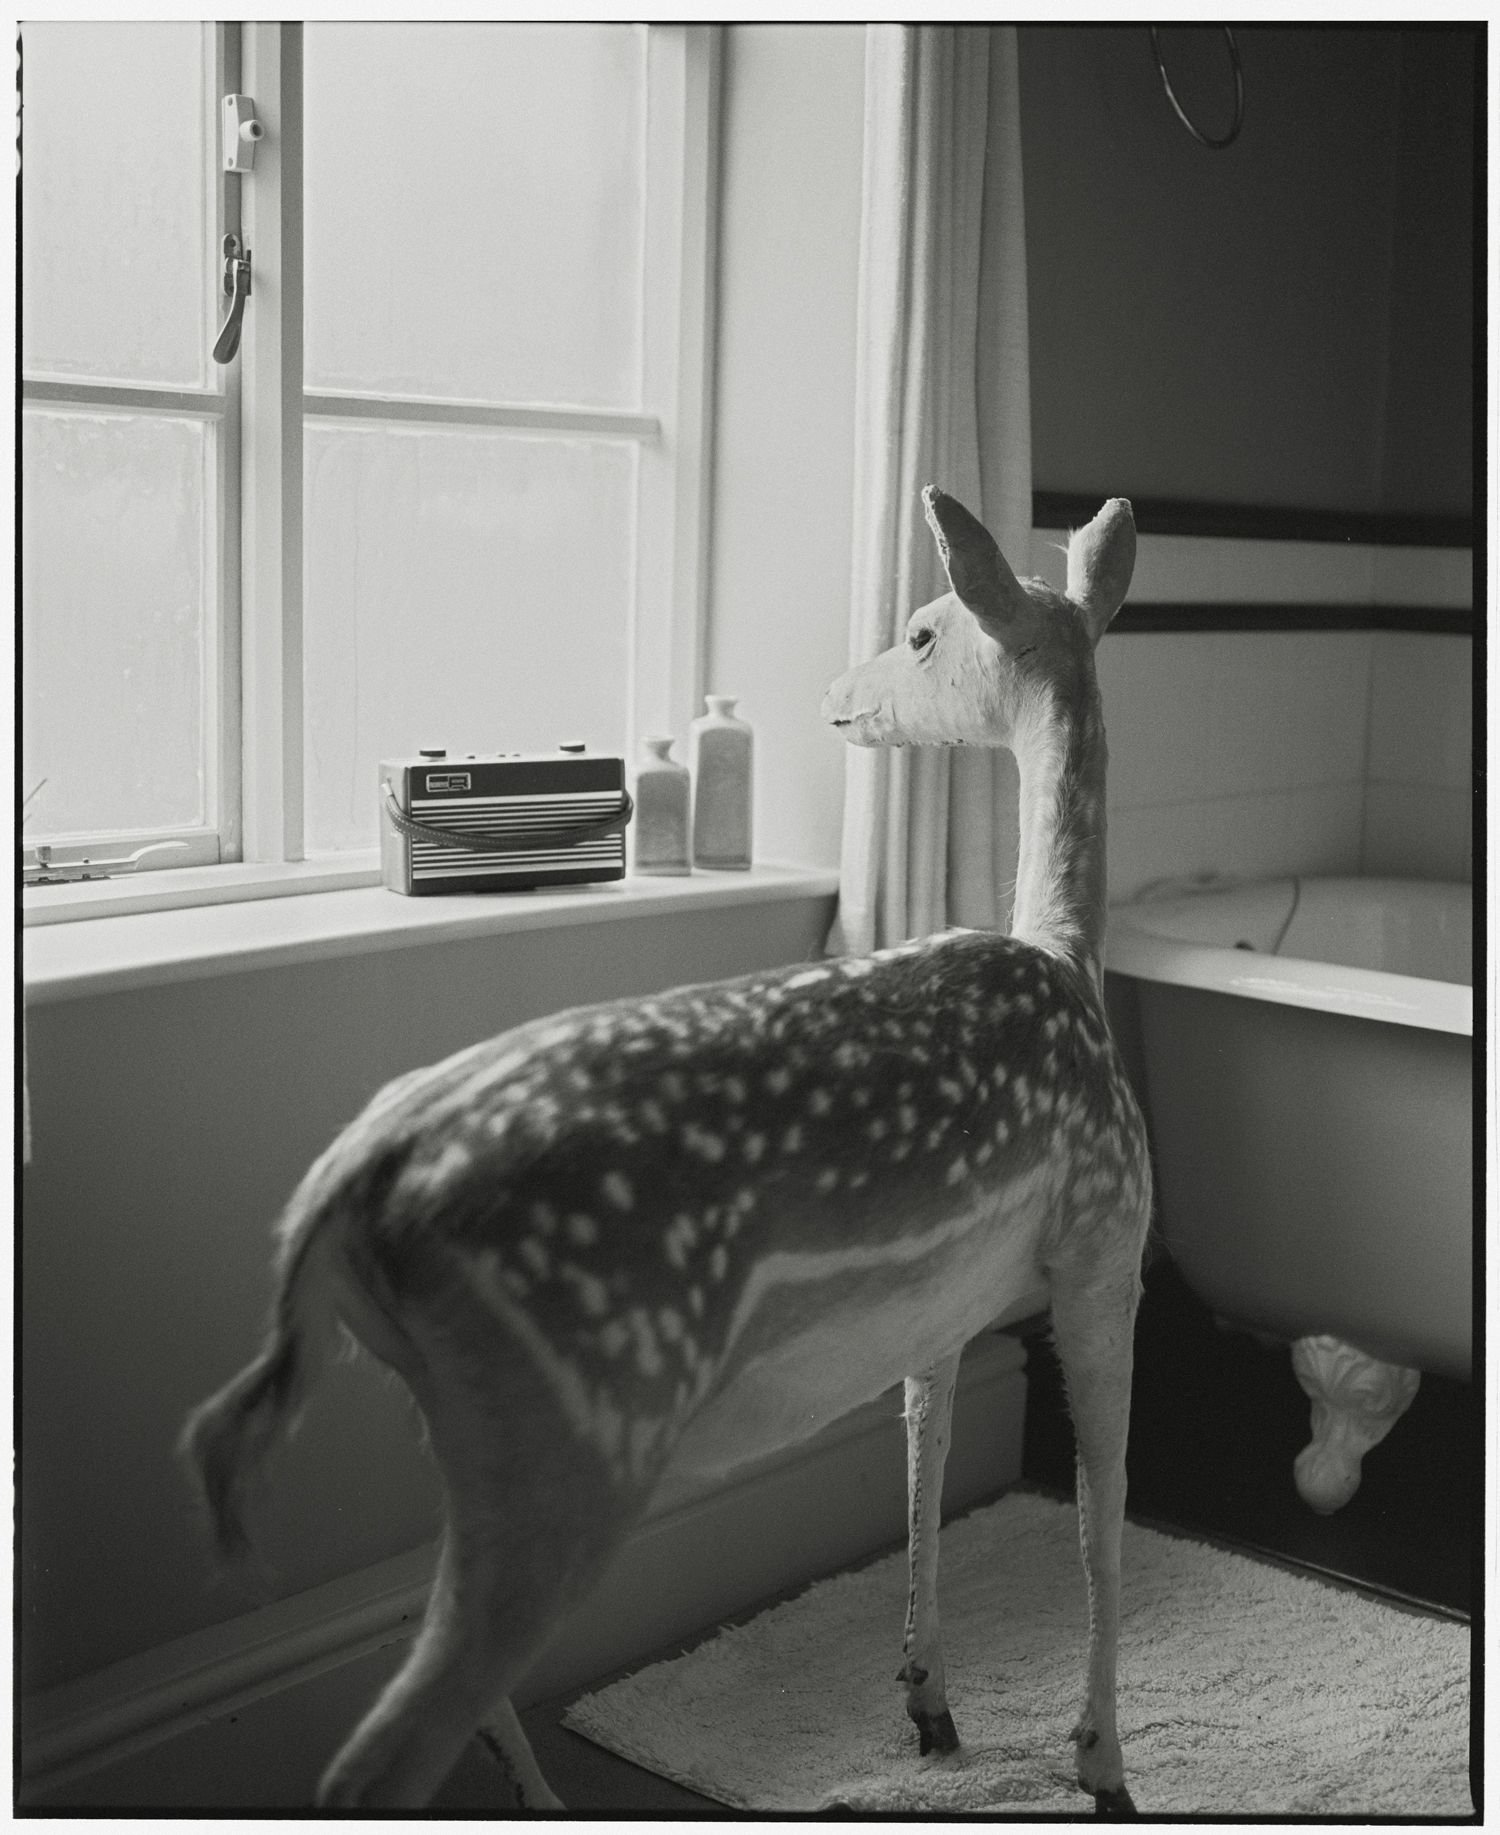 Deer In The Bathroom-2 (medium size)